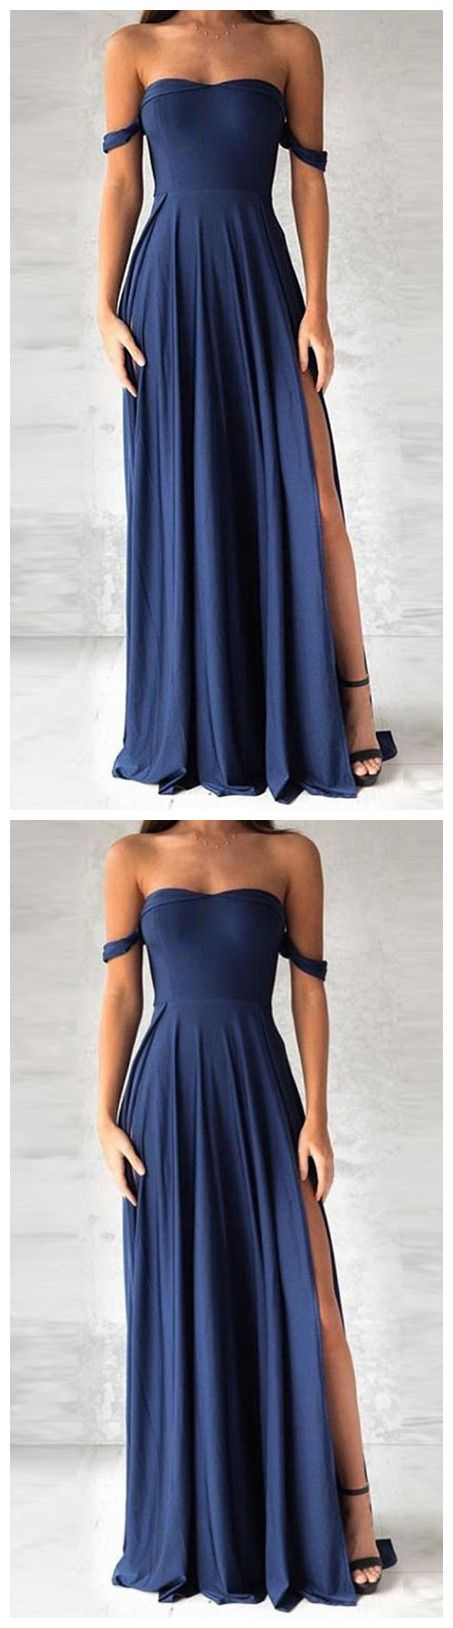 elegant navy blue prom dress, fashion off the shoulder party dress with split P0386  #promdresses #longpromdress #2018promdresses #fashionpromdresses #charmingpromdresses #2018newstyles #fashions #styles #hiprom #prom #navyblue #offtheshoulder #chiffon